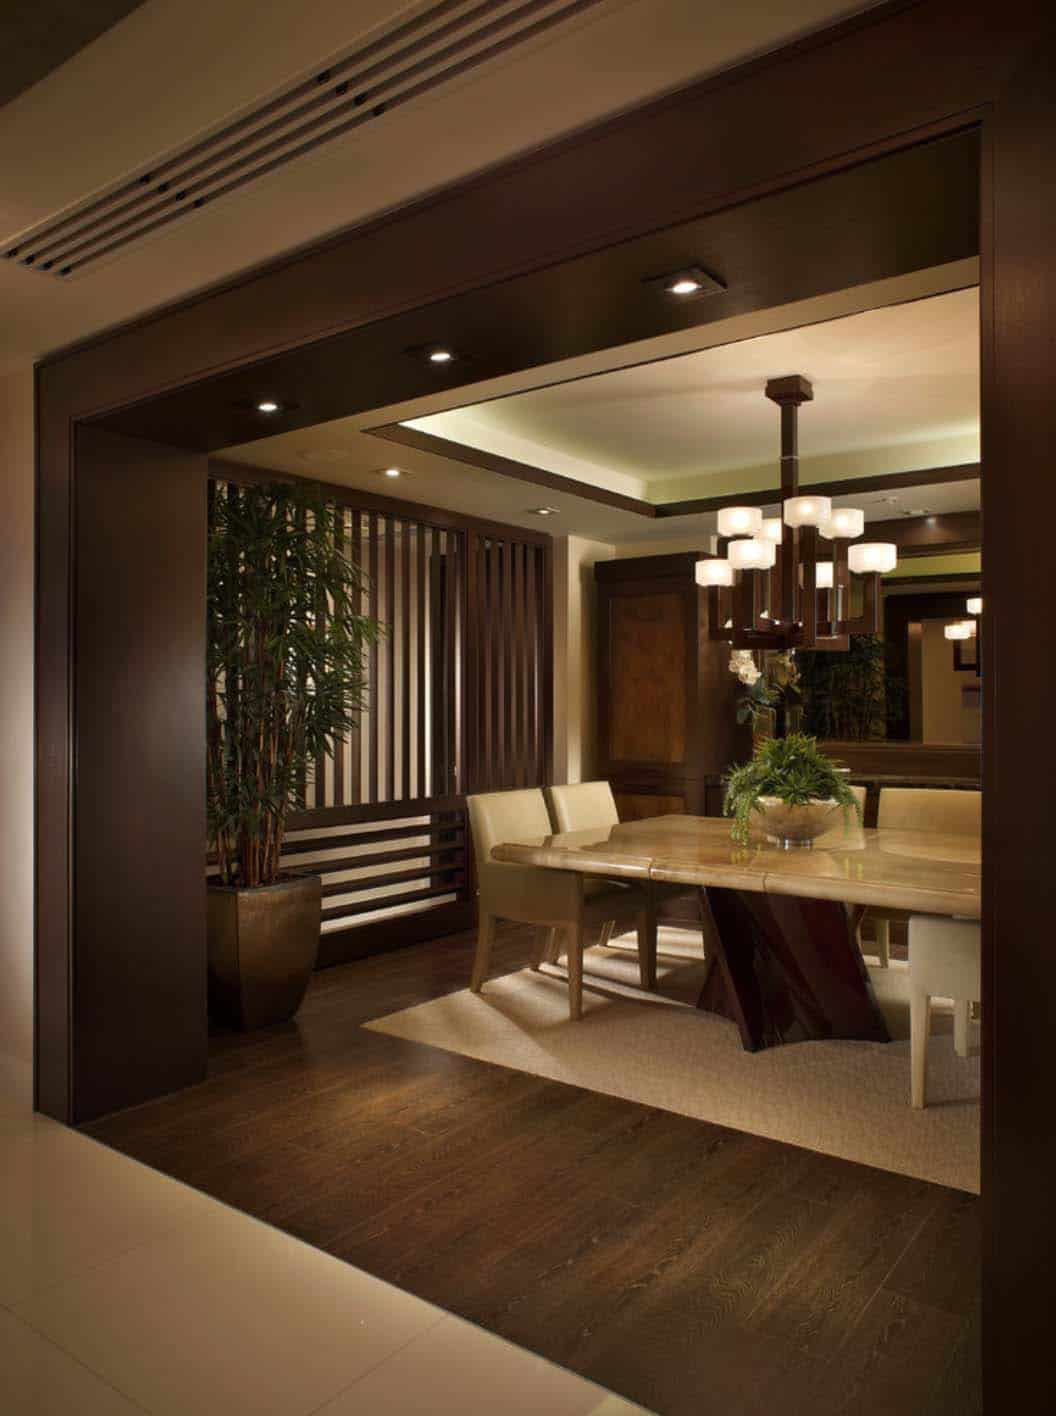 Contemporary Residence-Interiors by Steven G-08-1 Kindesign